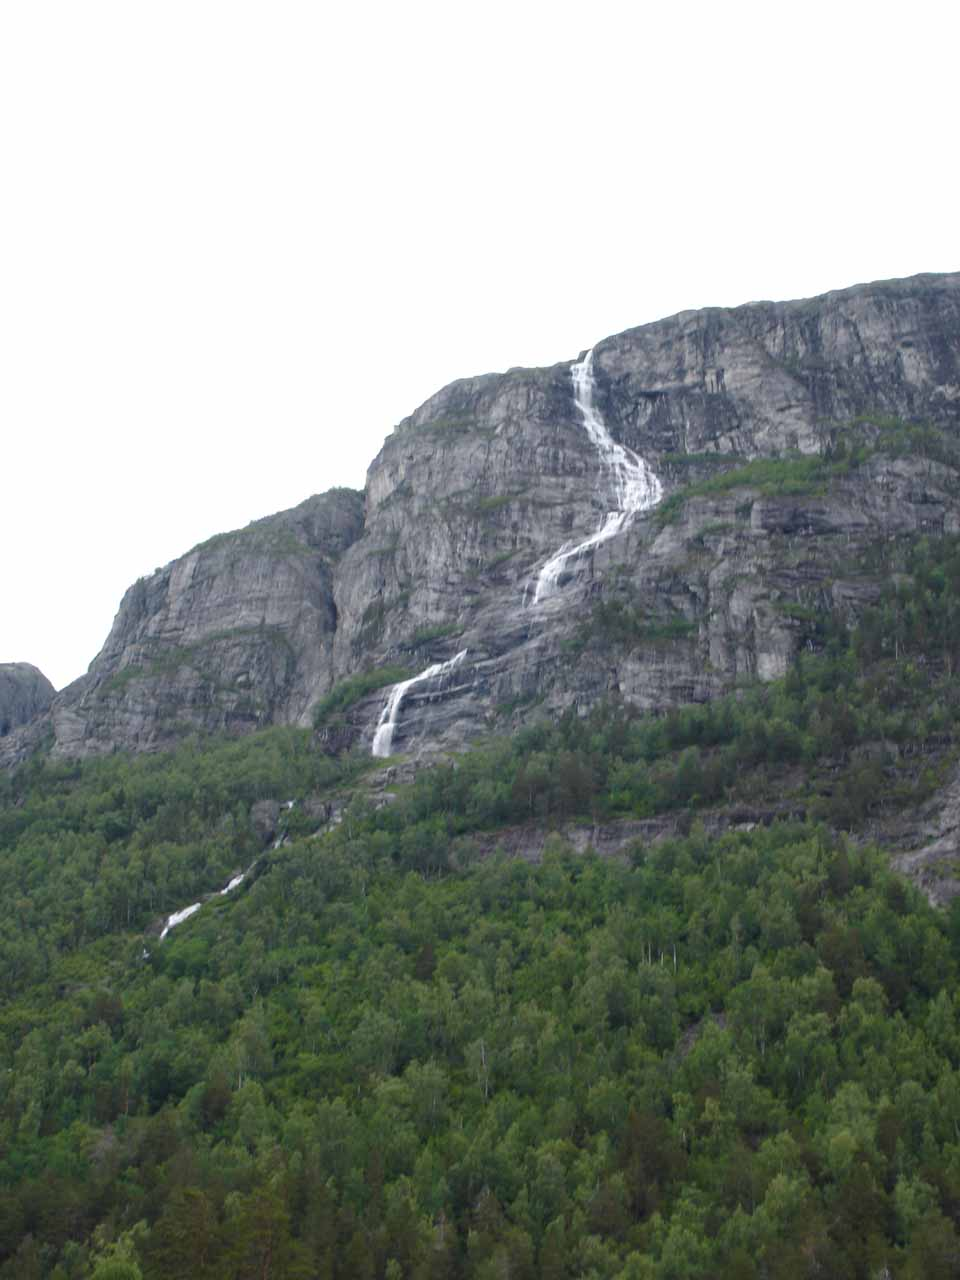 An interesting and tall twisting waterfall in Romsdal Valley that we noticed as we were approaching Ølmåafossen